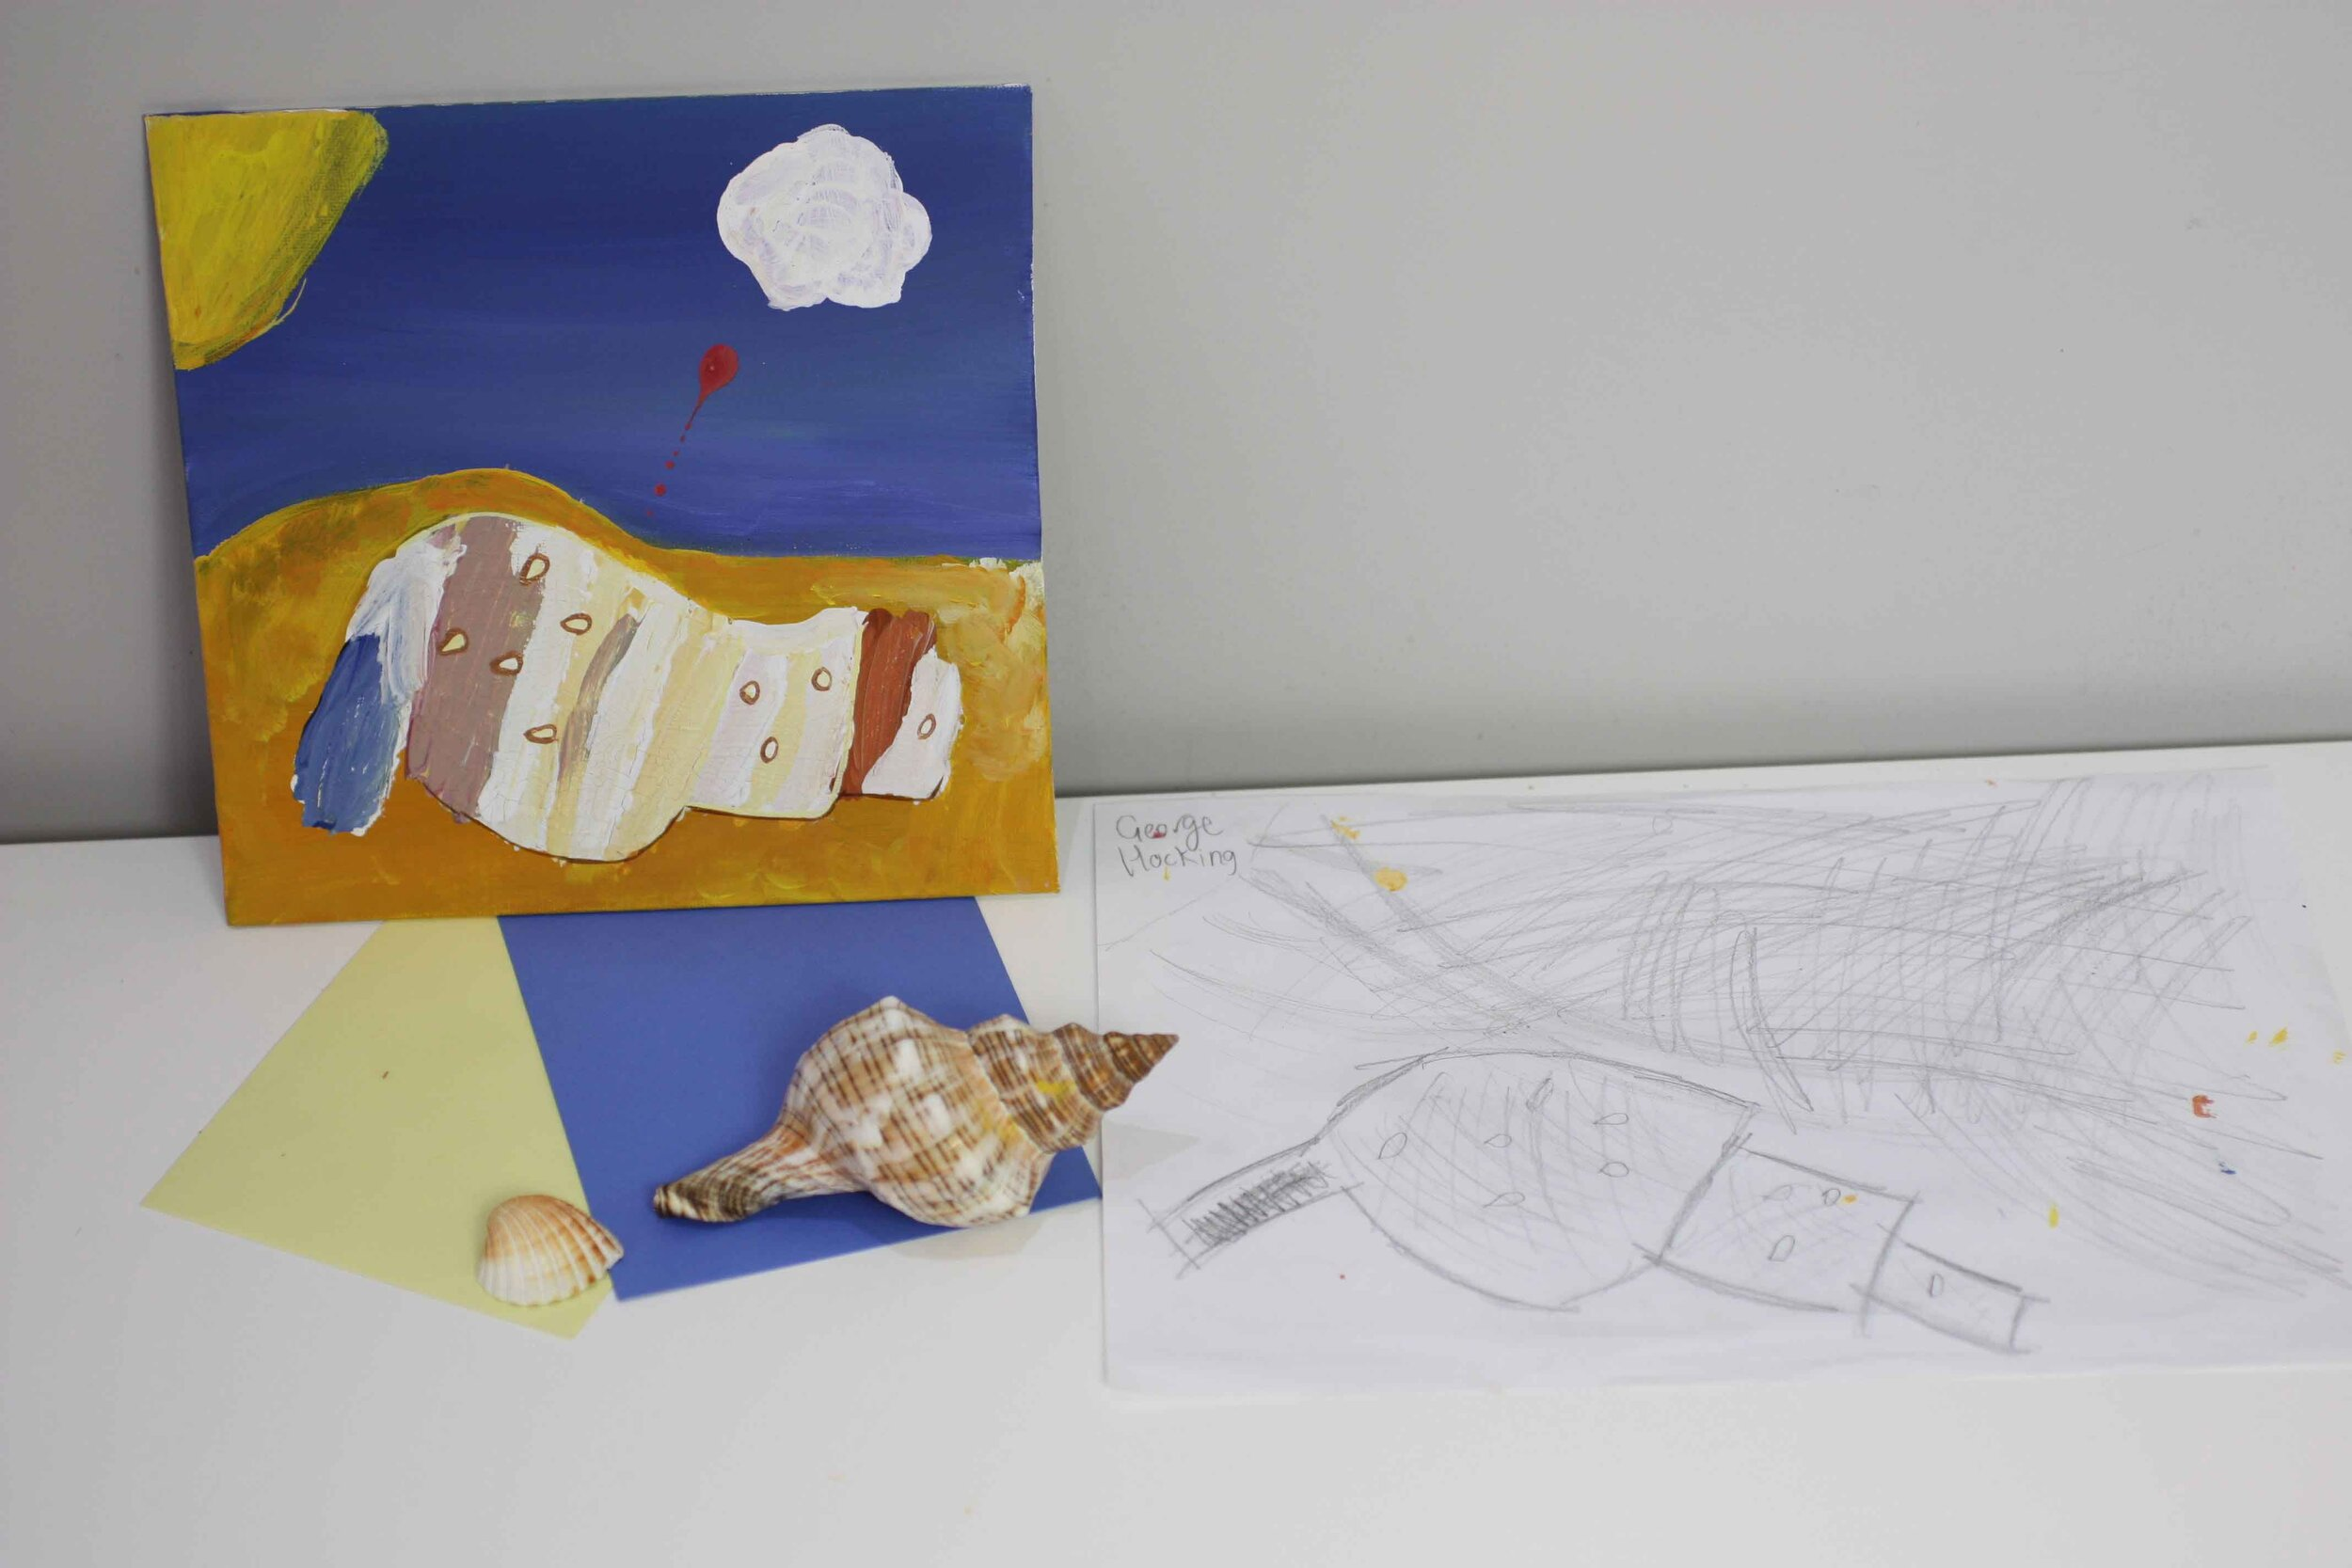 by George, Class: Lions, Year 5